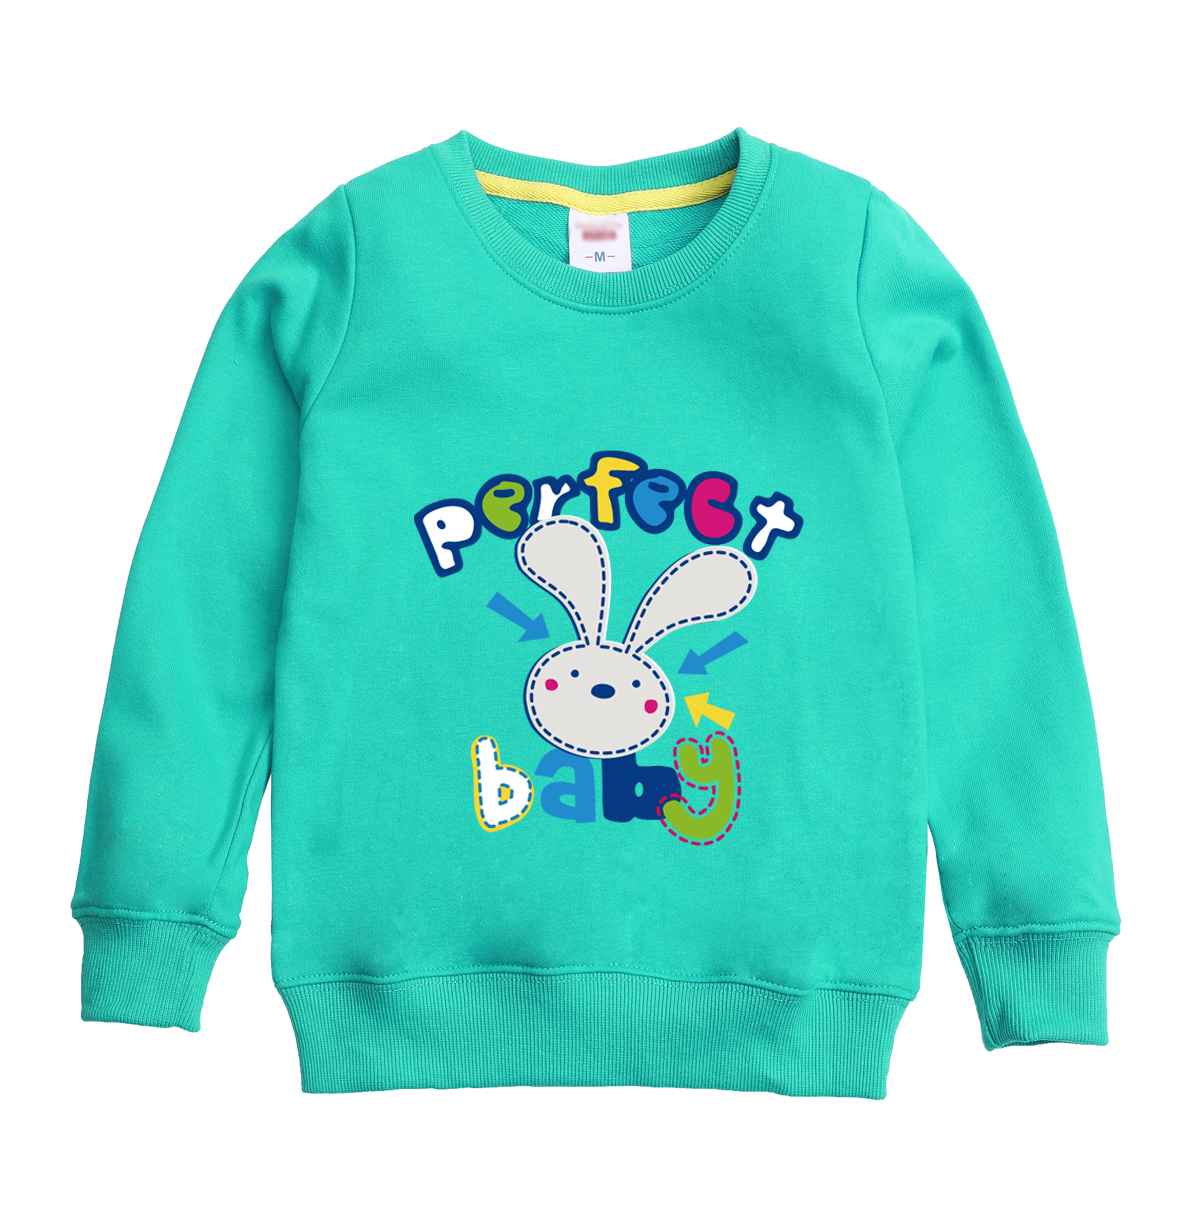 Perfect baby pattern printed hot top winter autumn sweatshirt design for child hooded childrens clothing